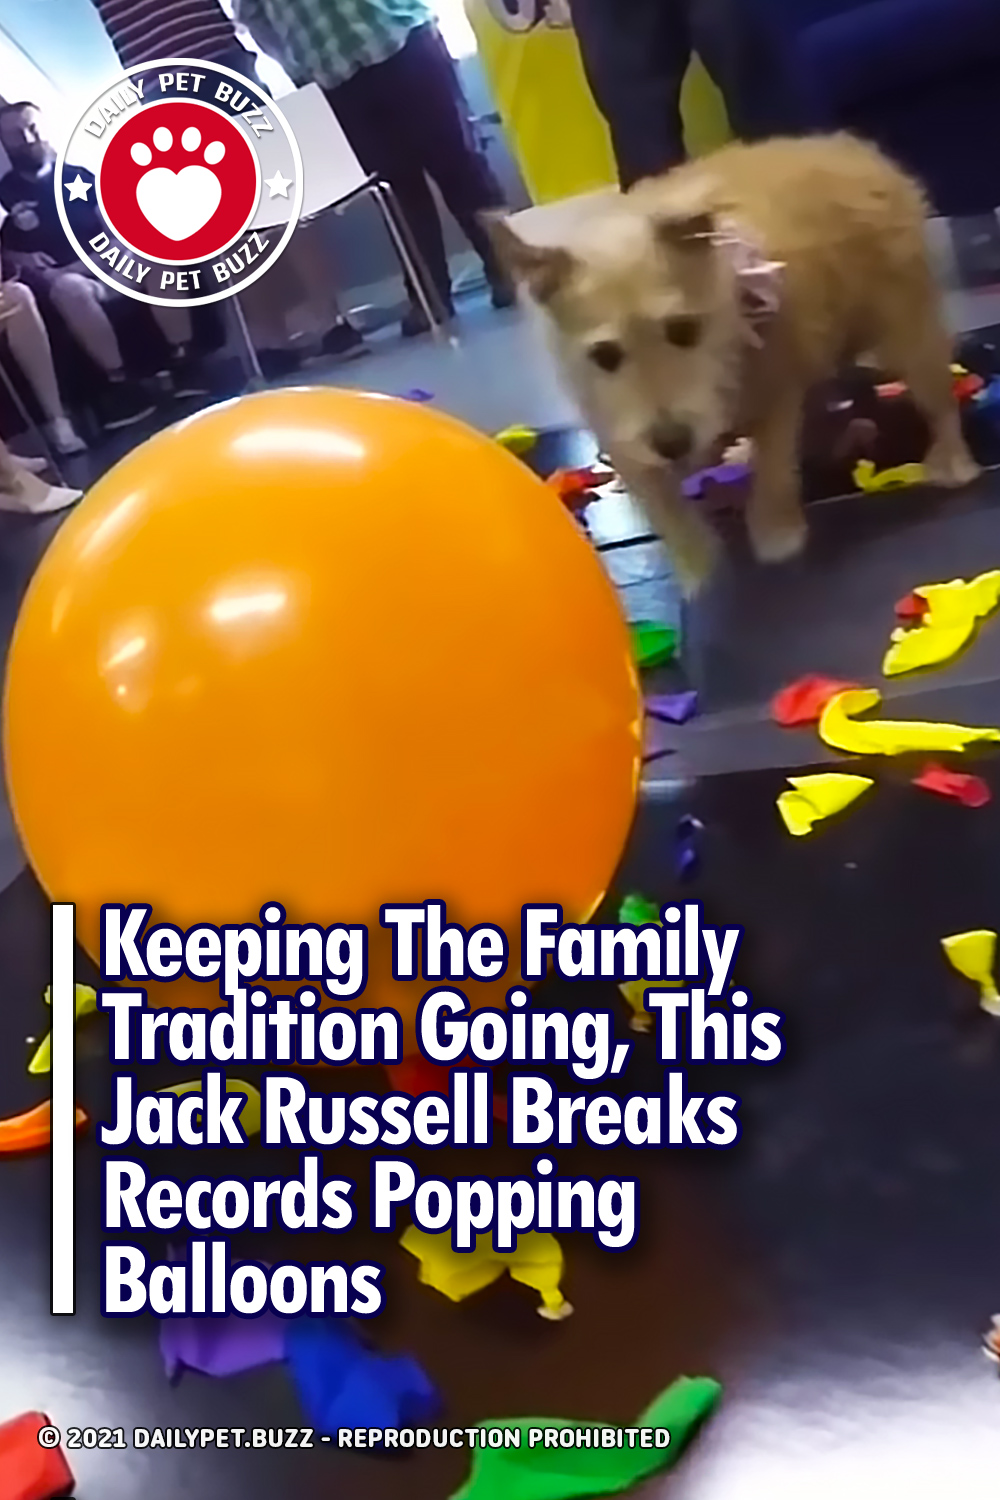 Keeping The Family Tradition Going, This Jack Russell Breaks Records Popping Balloons